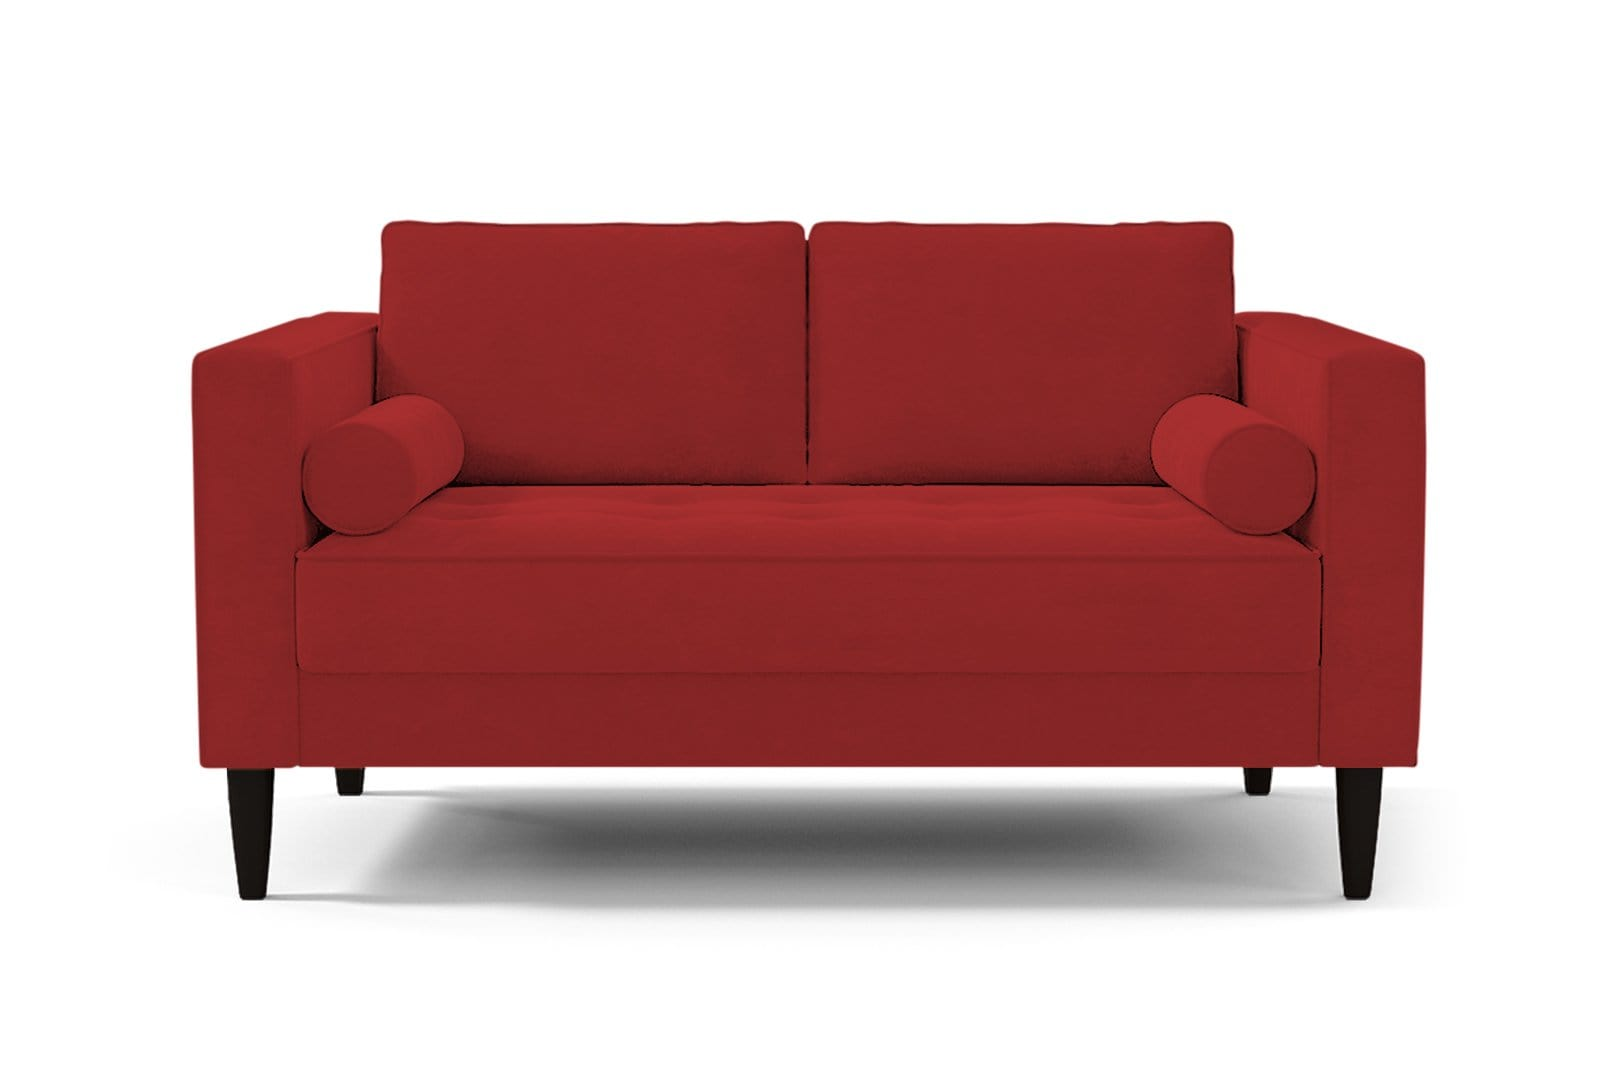 Delilah Loveseat - Red - Small Space Modern Couch Made in the USA - Sold by Apt2B